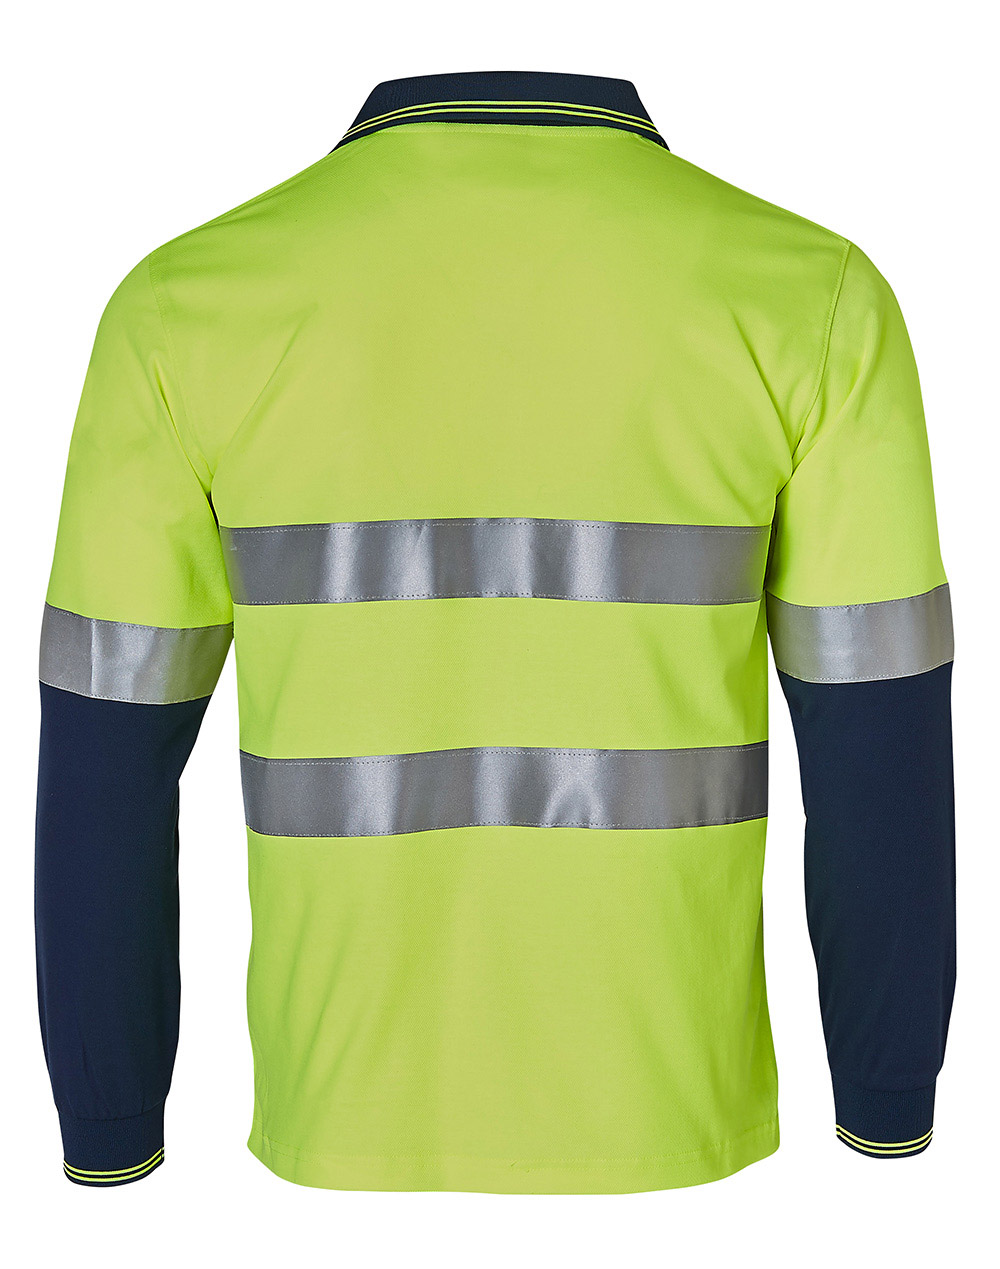 https://s3-ap-southeast-1.amazonaws.com/ws-imgs/WORKWEAR/SW21A_YellowNavy_Back.jpg